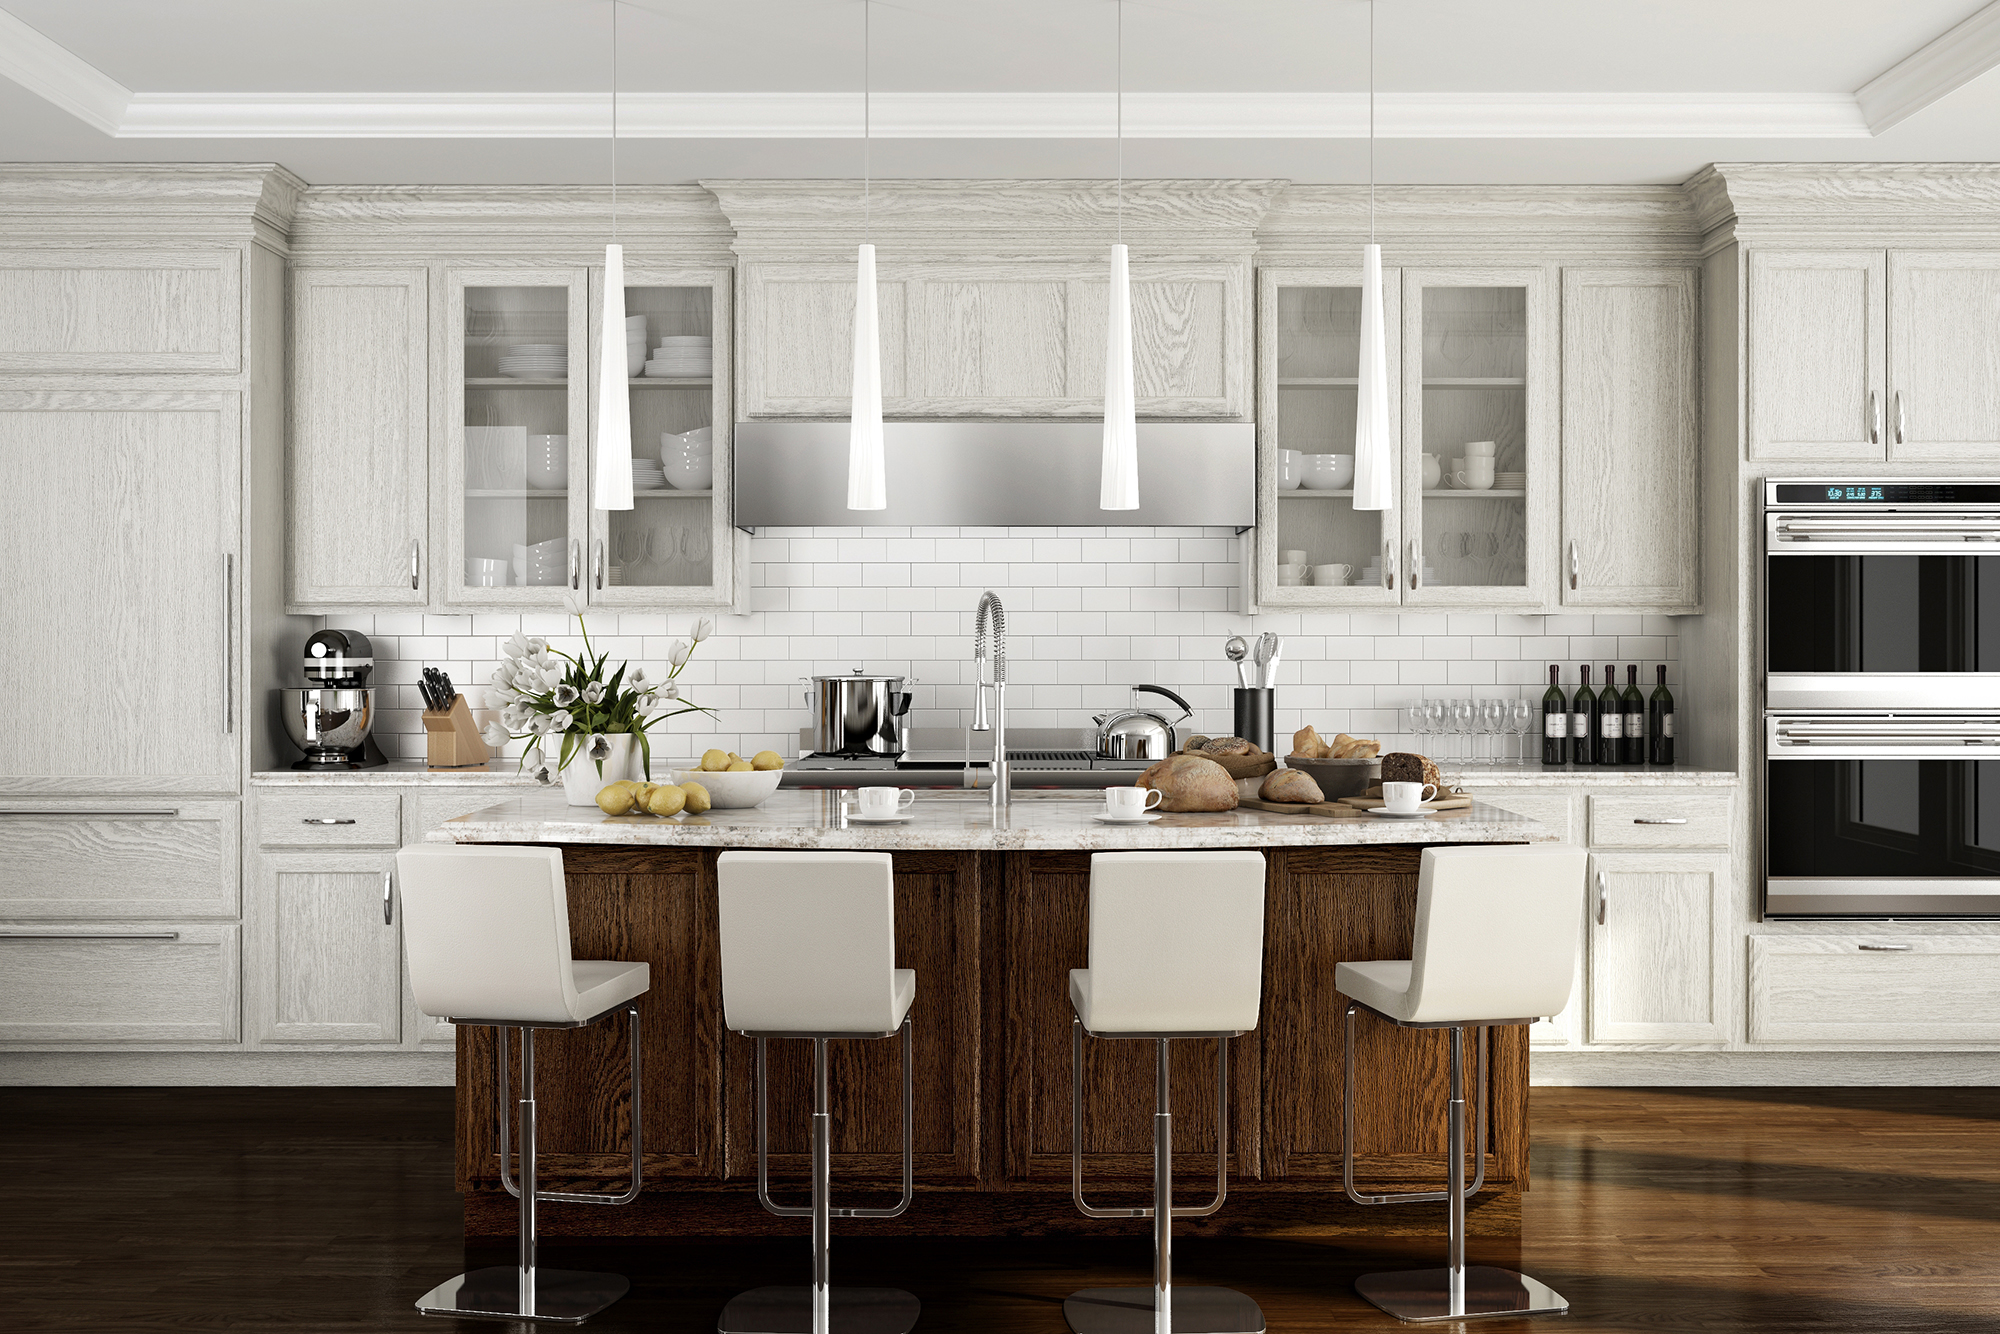 Kitchen Cabinets Red Oak Floors Consider Red Oak A Versatile Hardwood That Can Be Used In Any